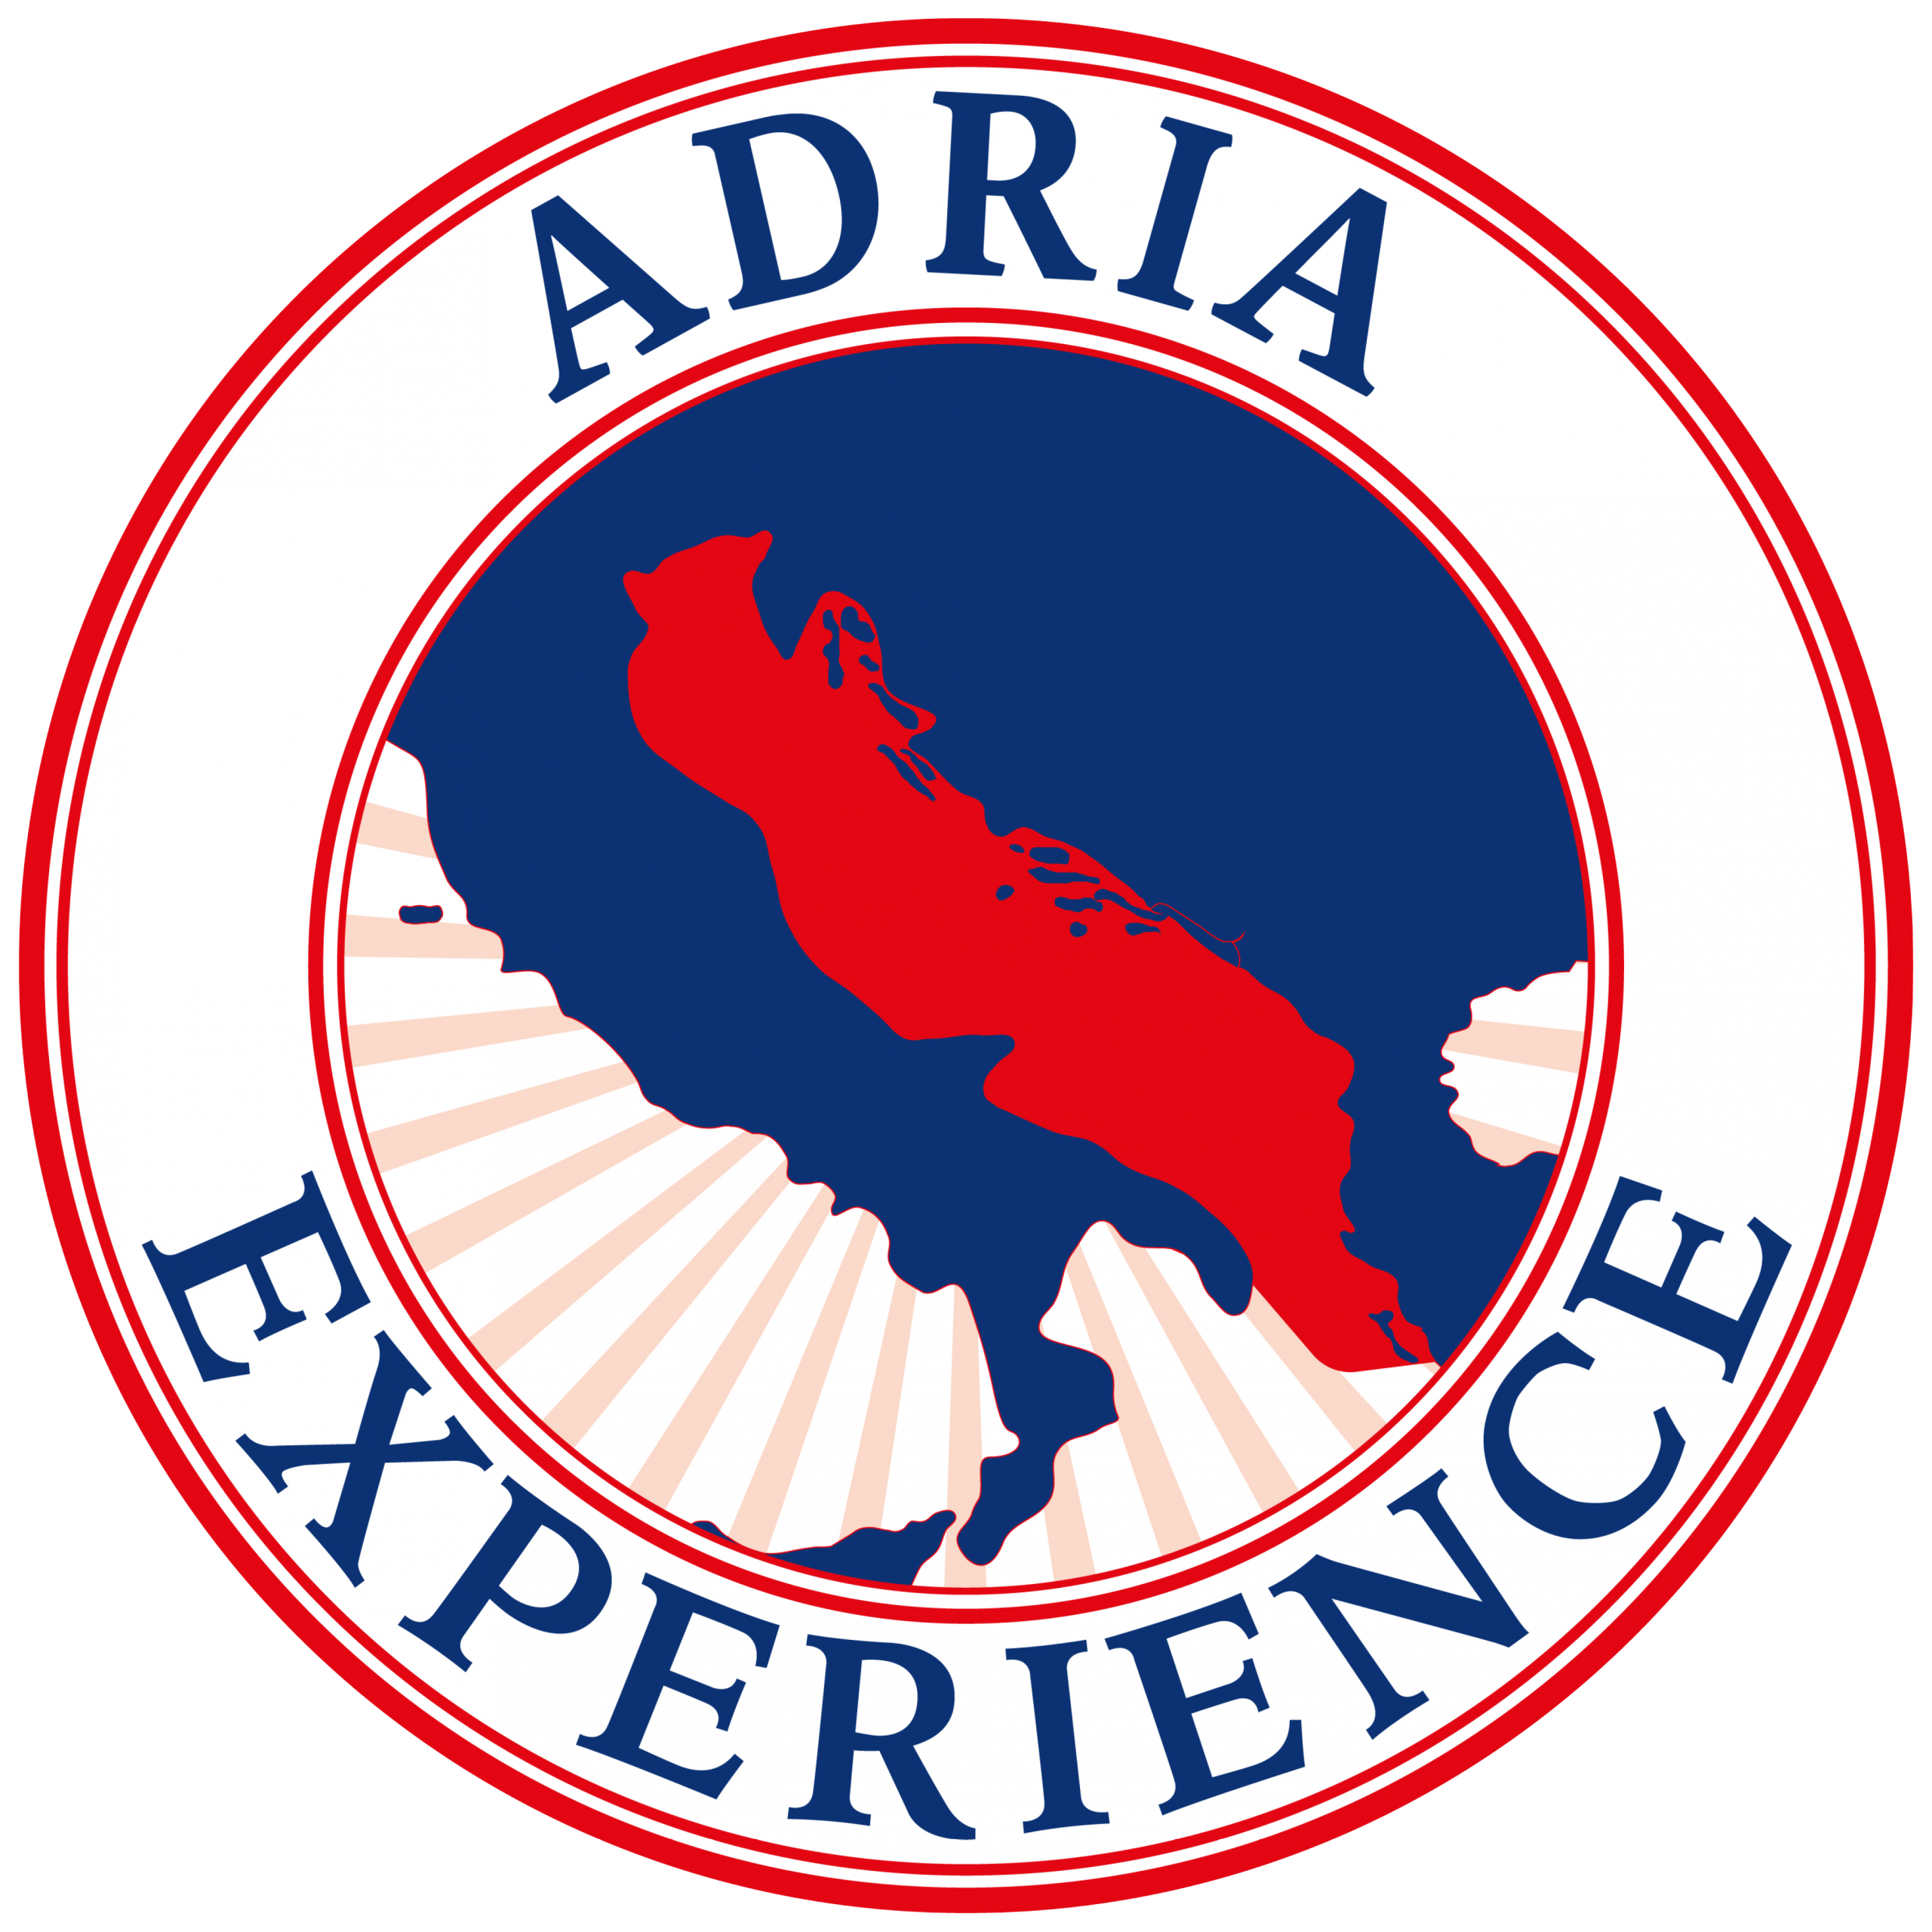 Adria Experience | Over Ons - Adria Experience